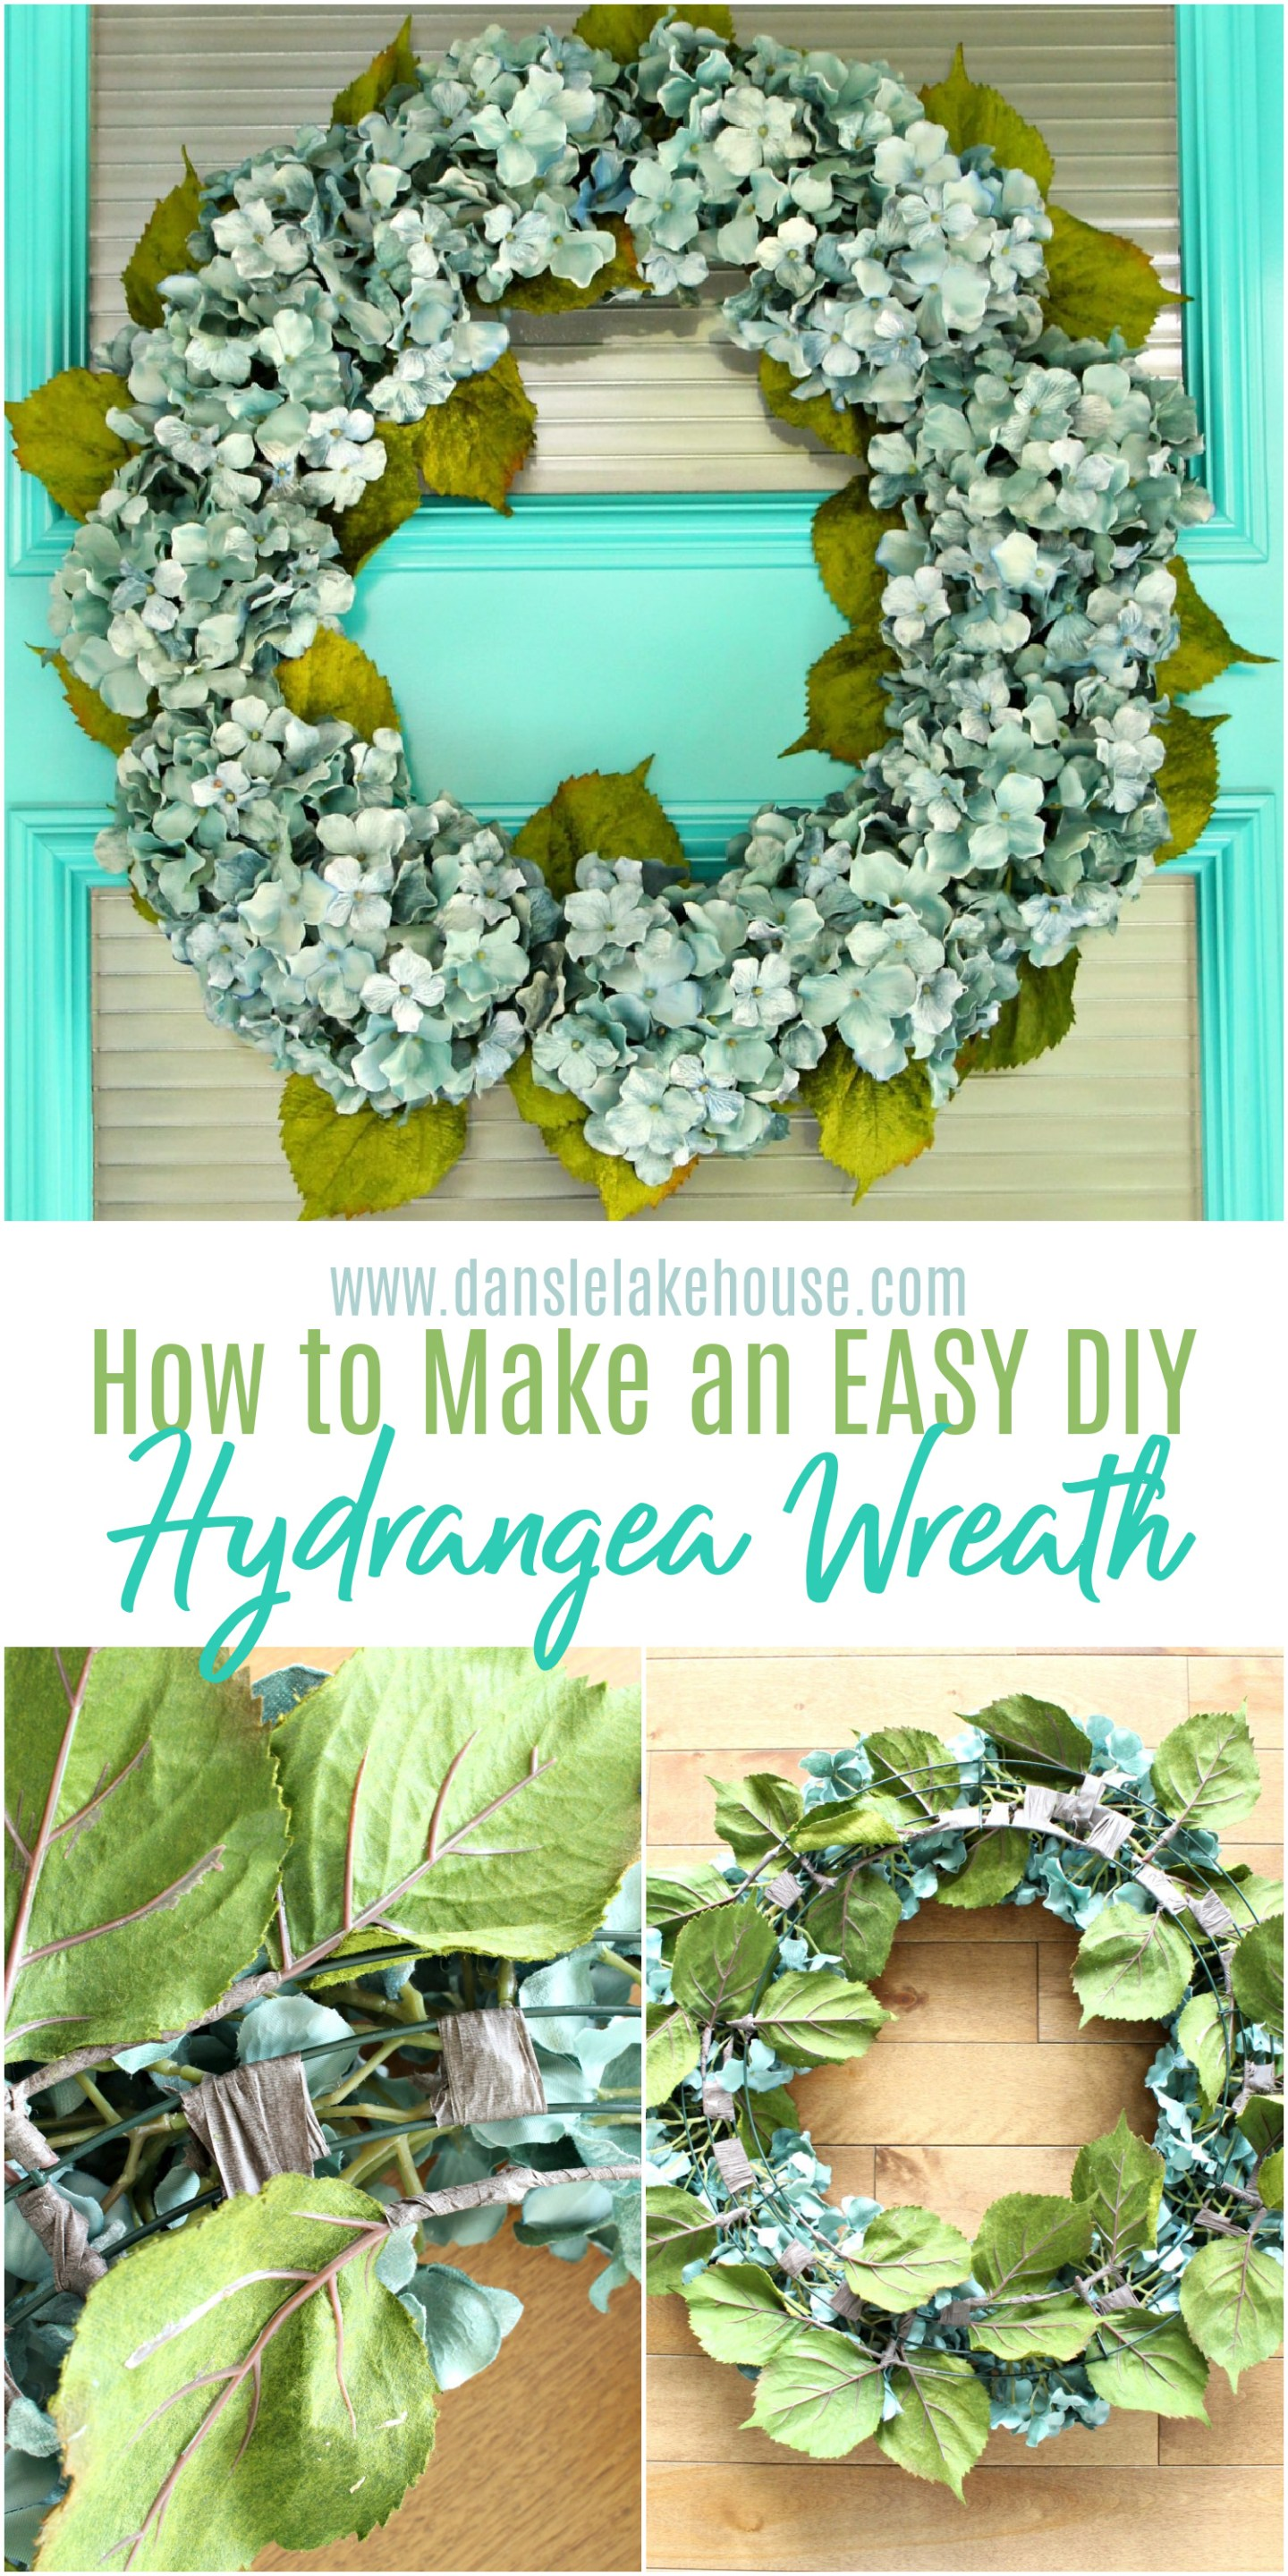 How to Make an Easy Hydrangea Wreath